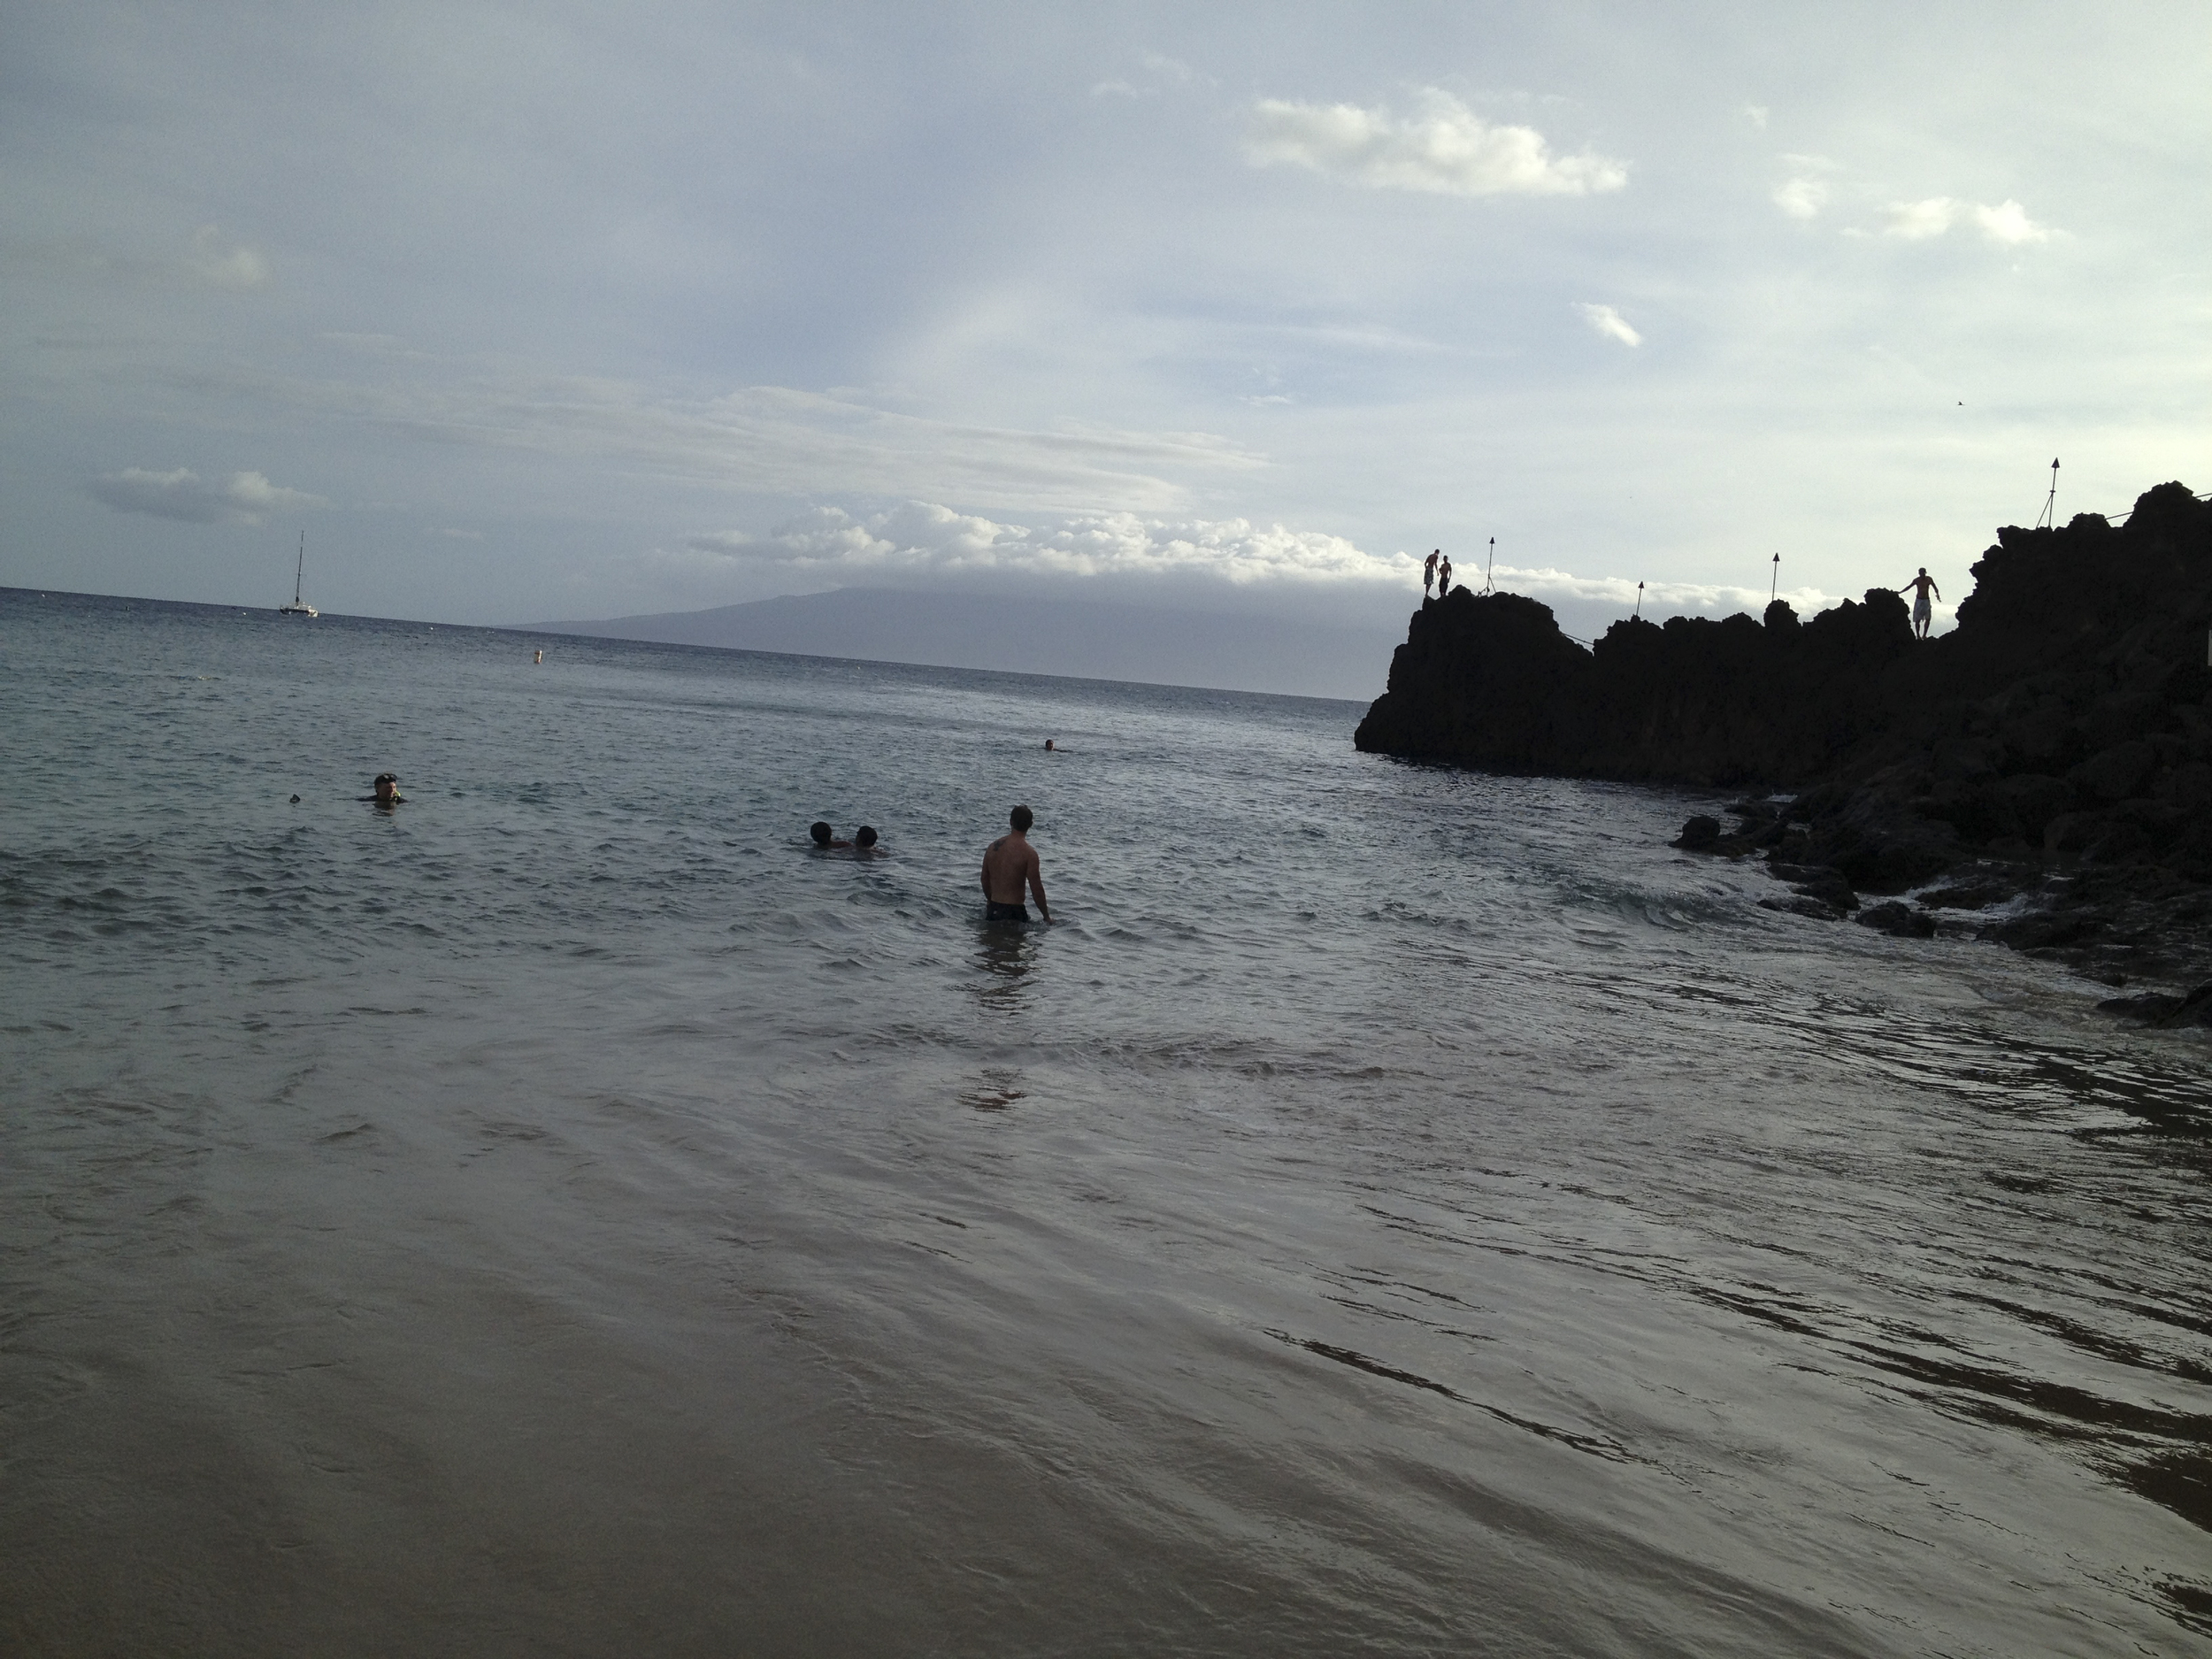 Black Rock; My husband is on the edge ready to jump into the water.